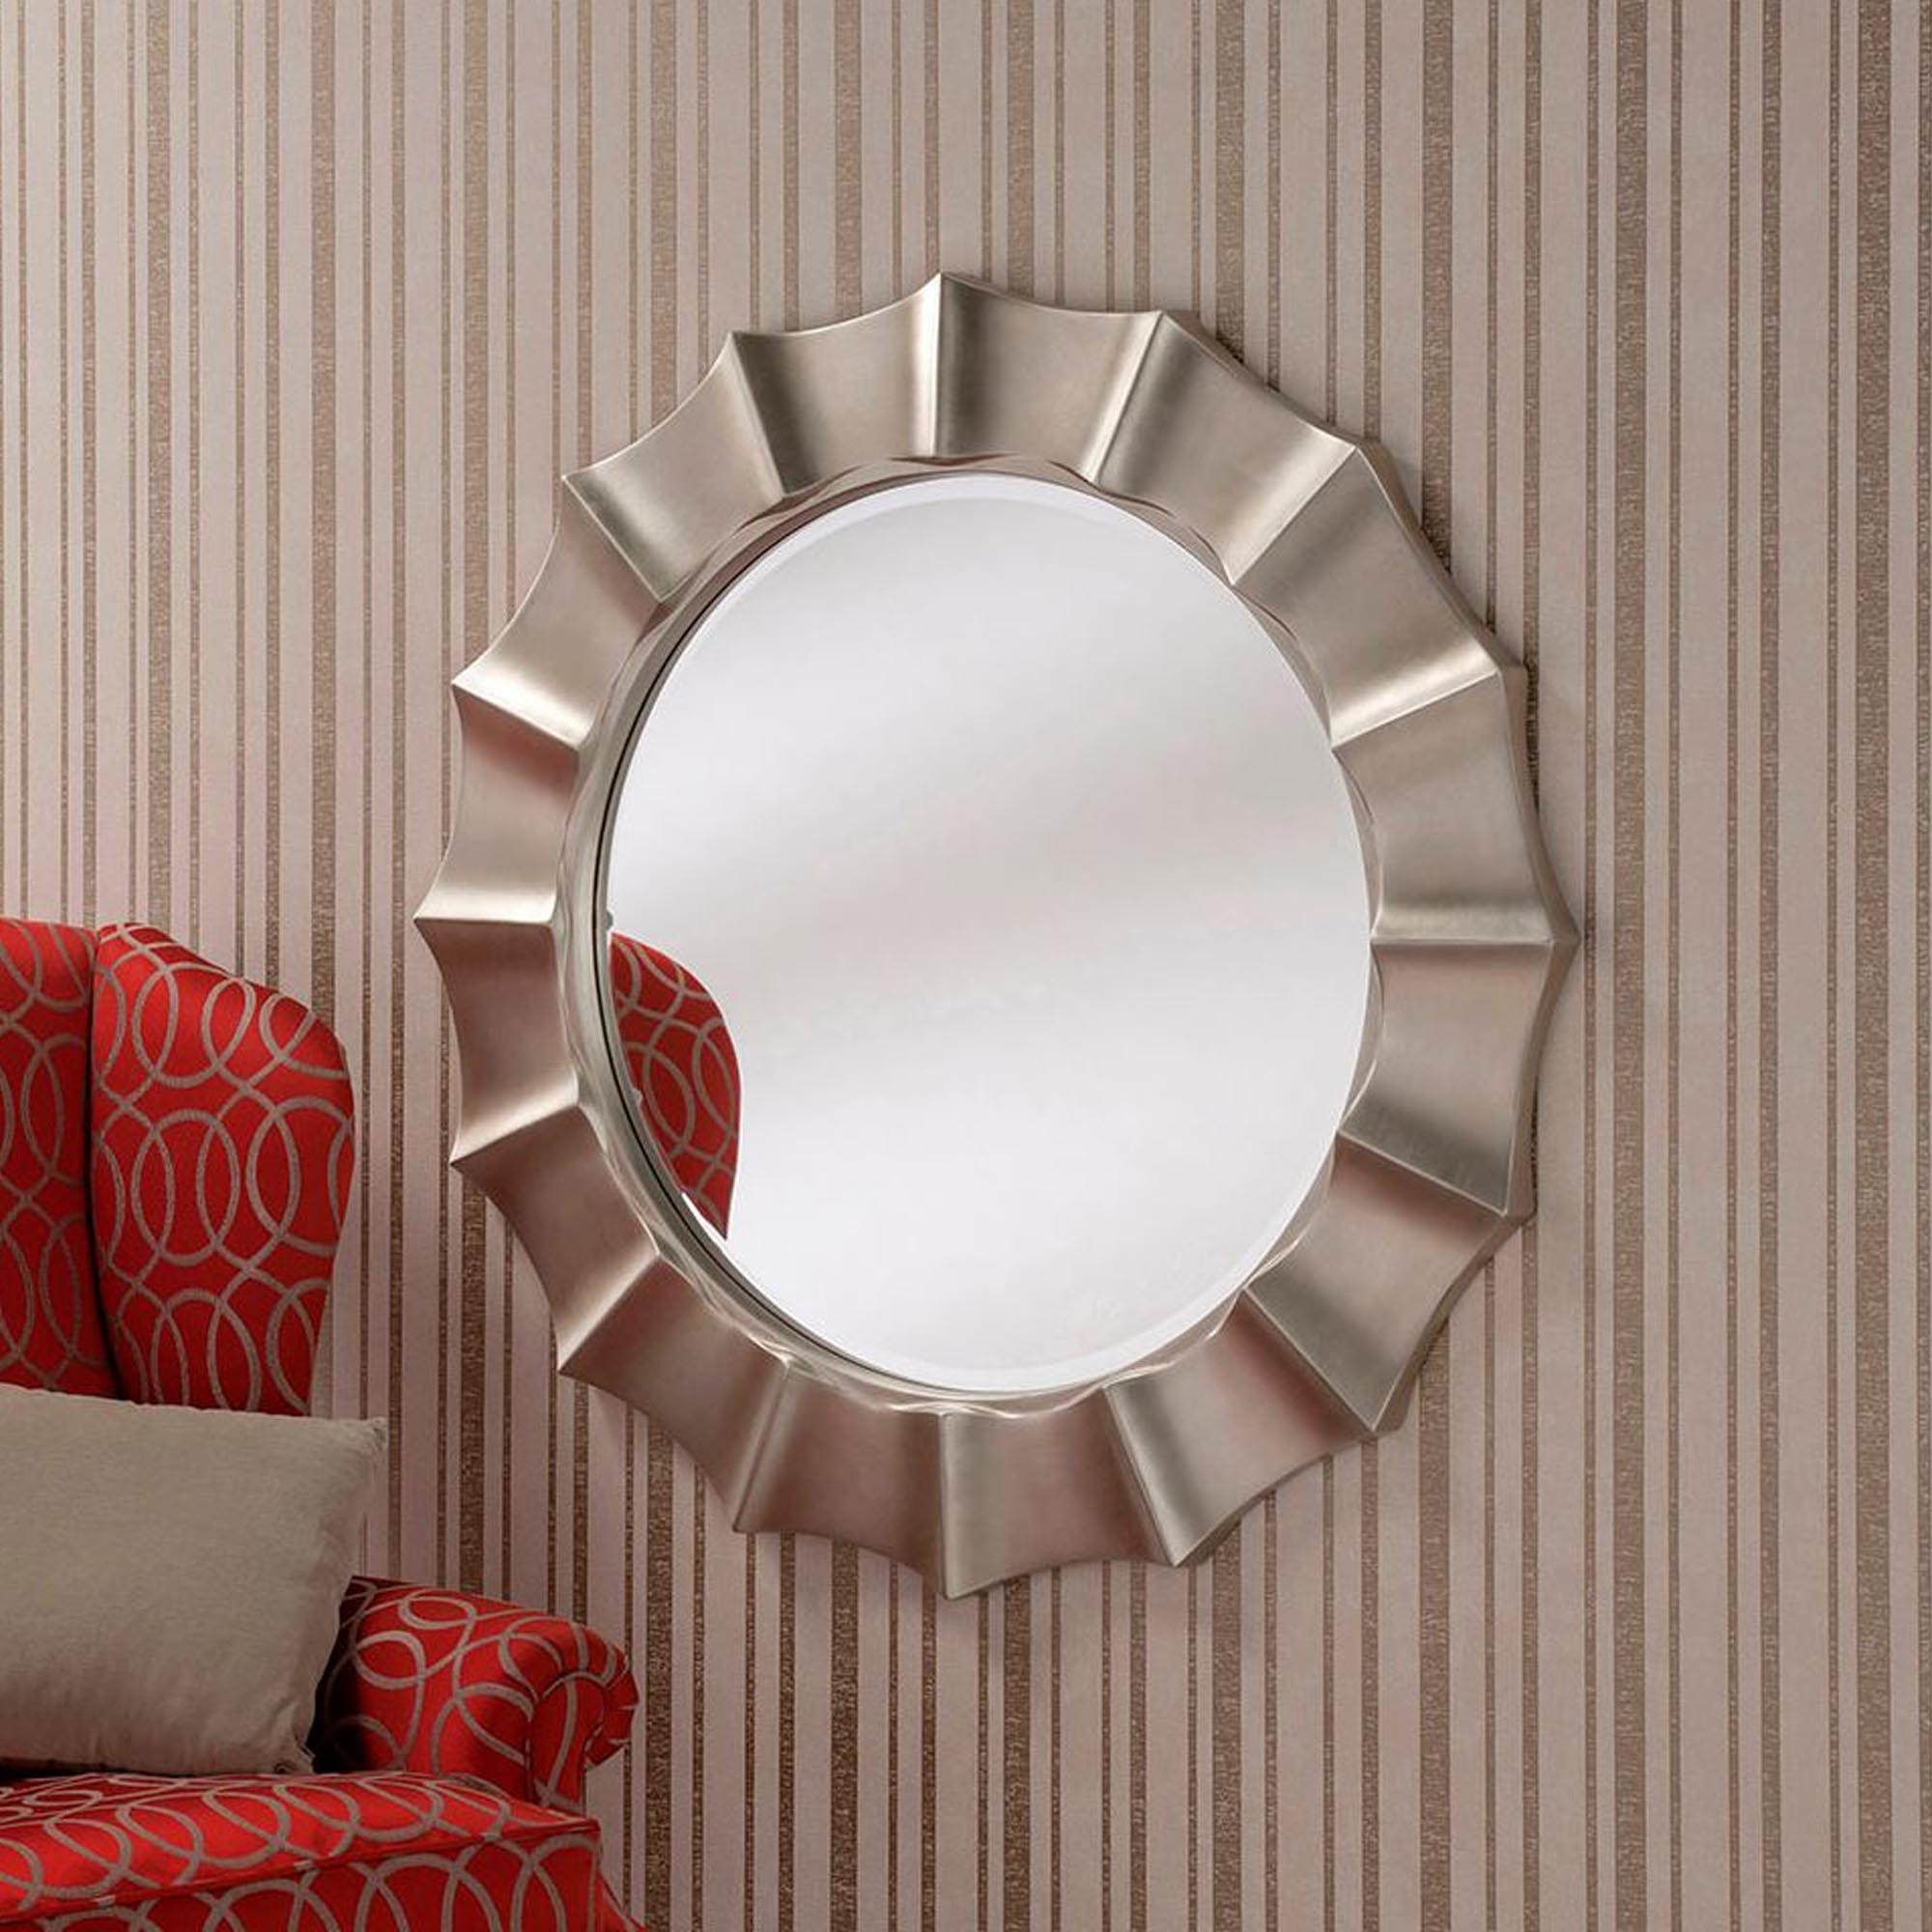 2019 Bevelled Round Silver Wall Mirror Pertaining To Round Silver Wall Mirrors (View 1 of 20)